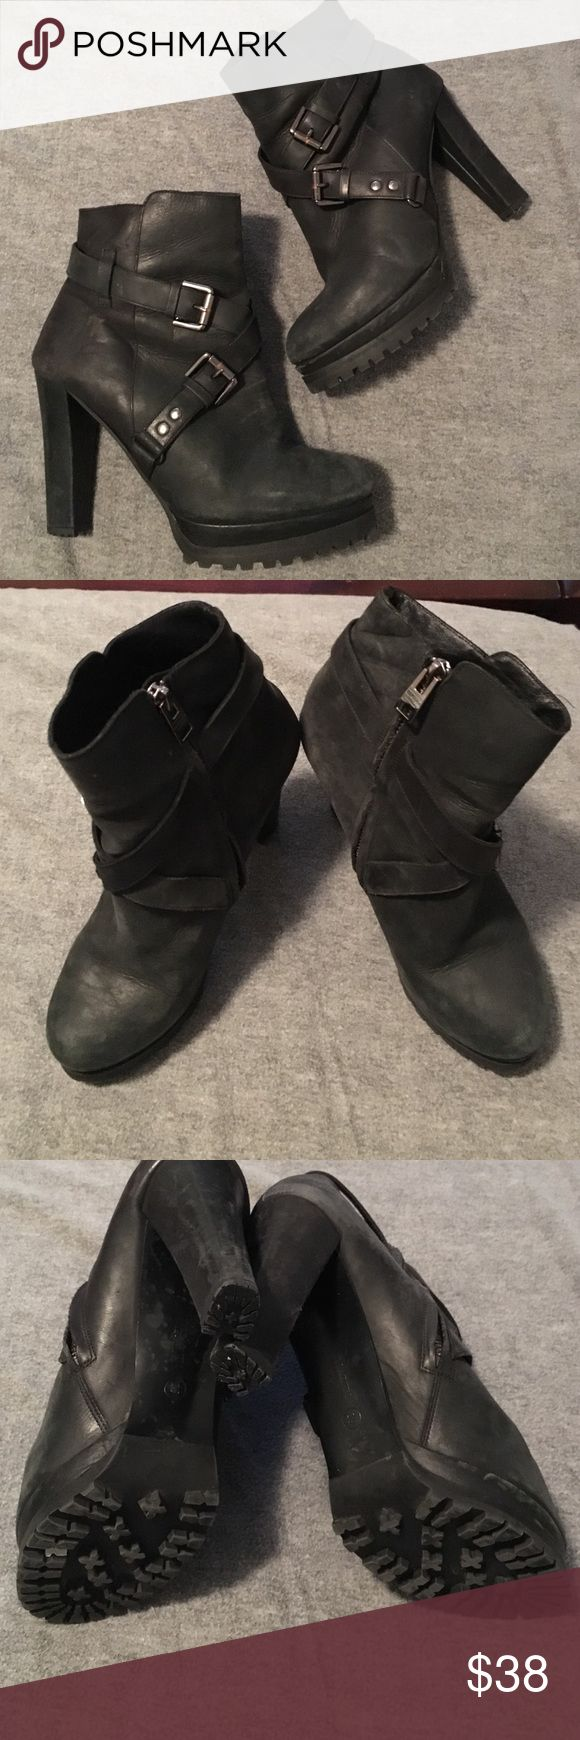 Allsaints boots Super comfy boots. They are quite worn, they were my favorites for a while but that means they're perfectly broken in! All Saints Shoes Ankle Boots & Booties